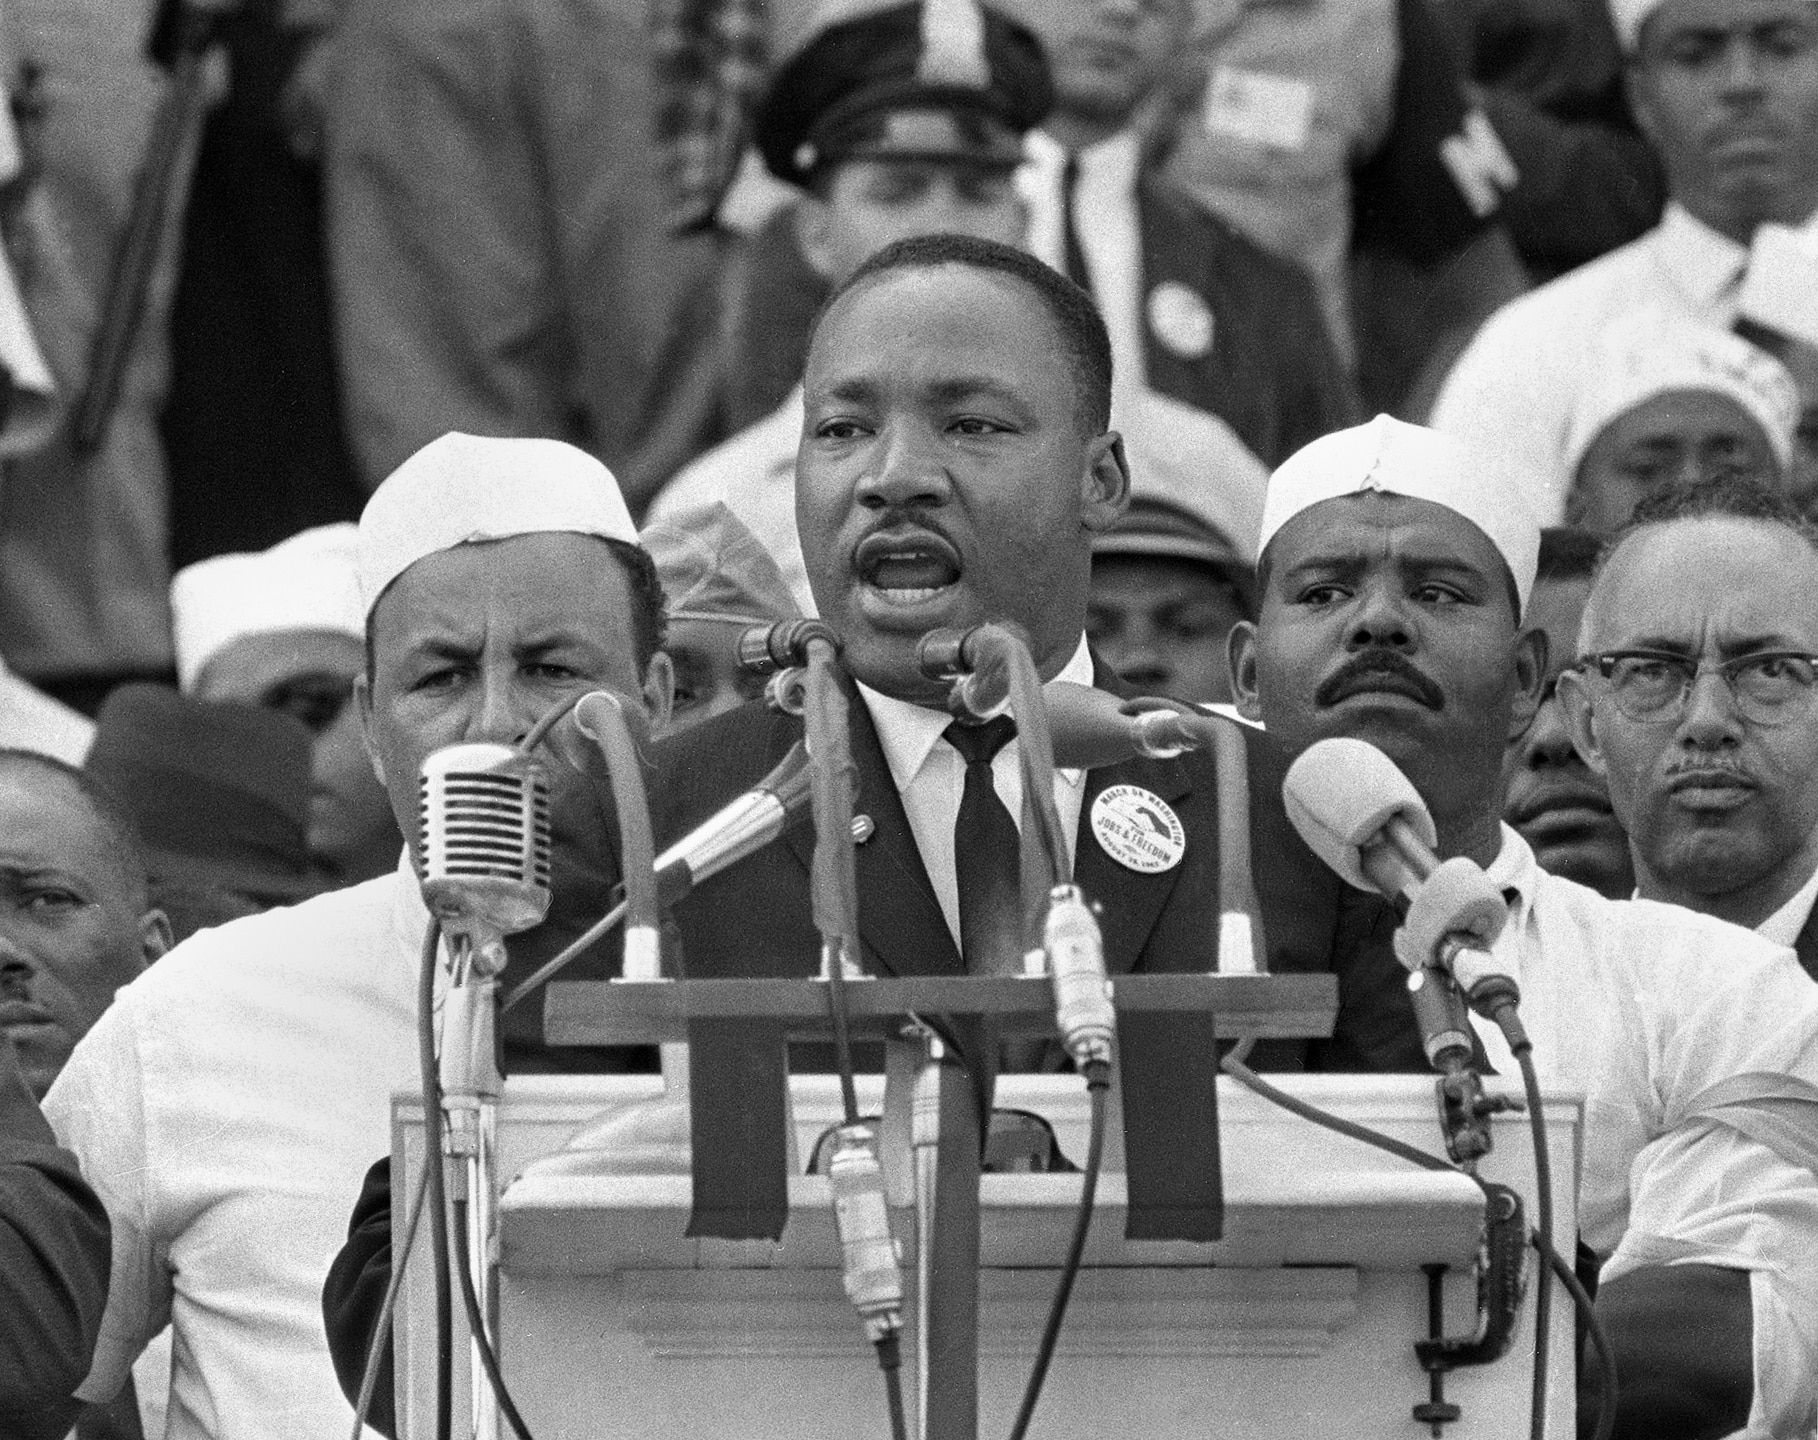 the life and legacy of martin luther king jr shareamerica martin luther king speaking into row of microphones crowd behind him copy ap images